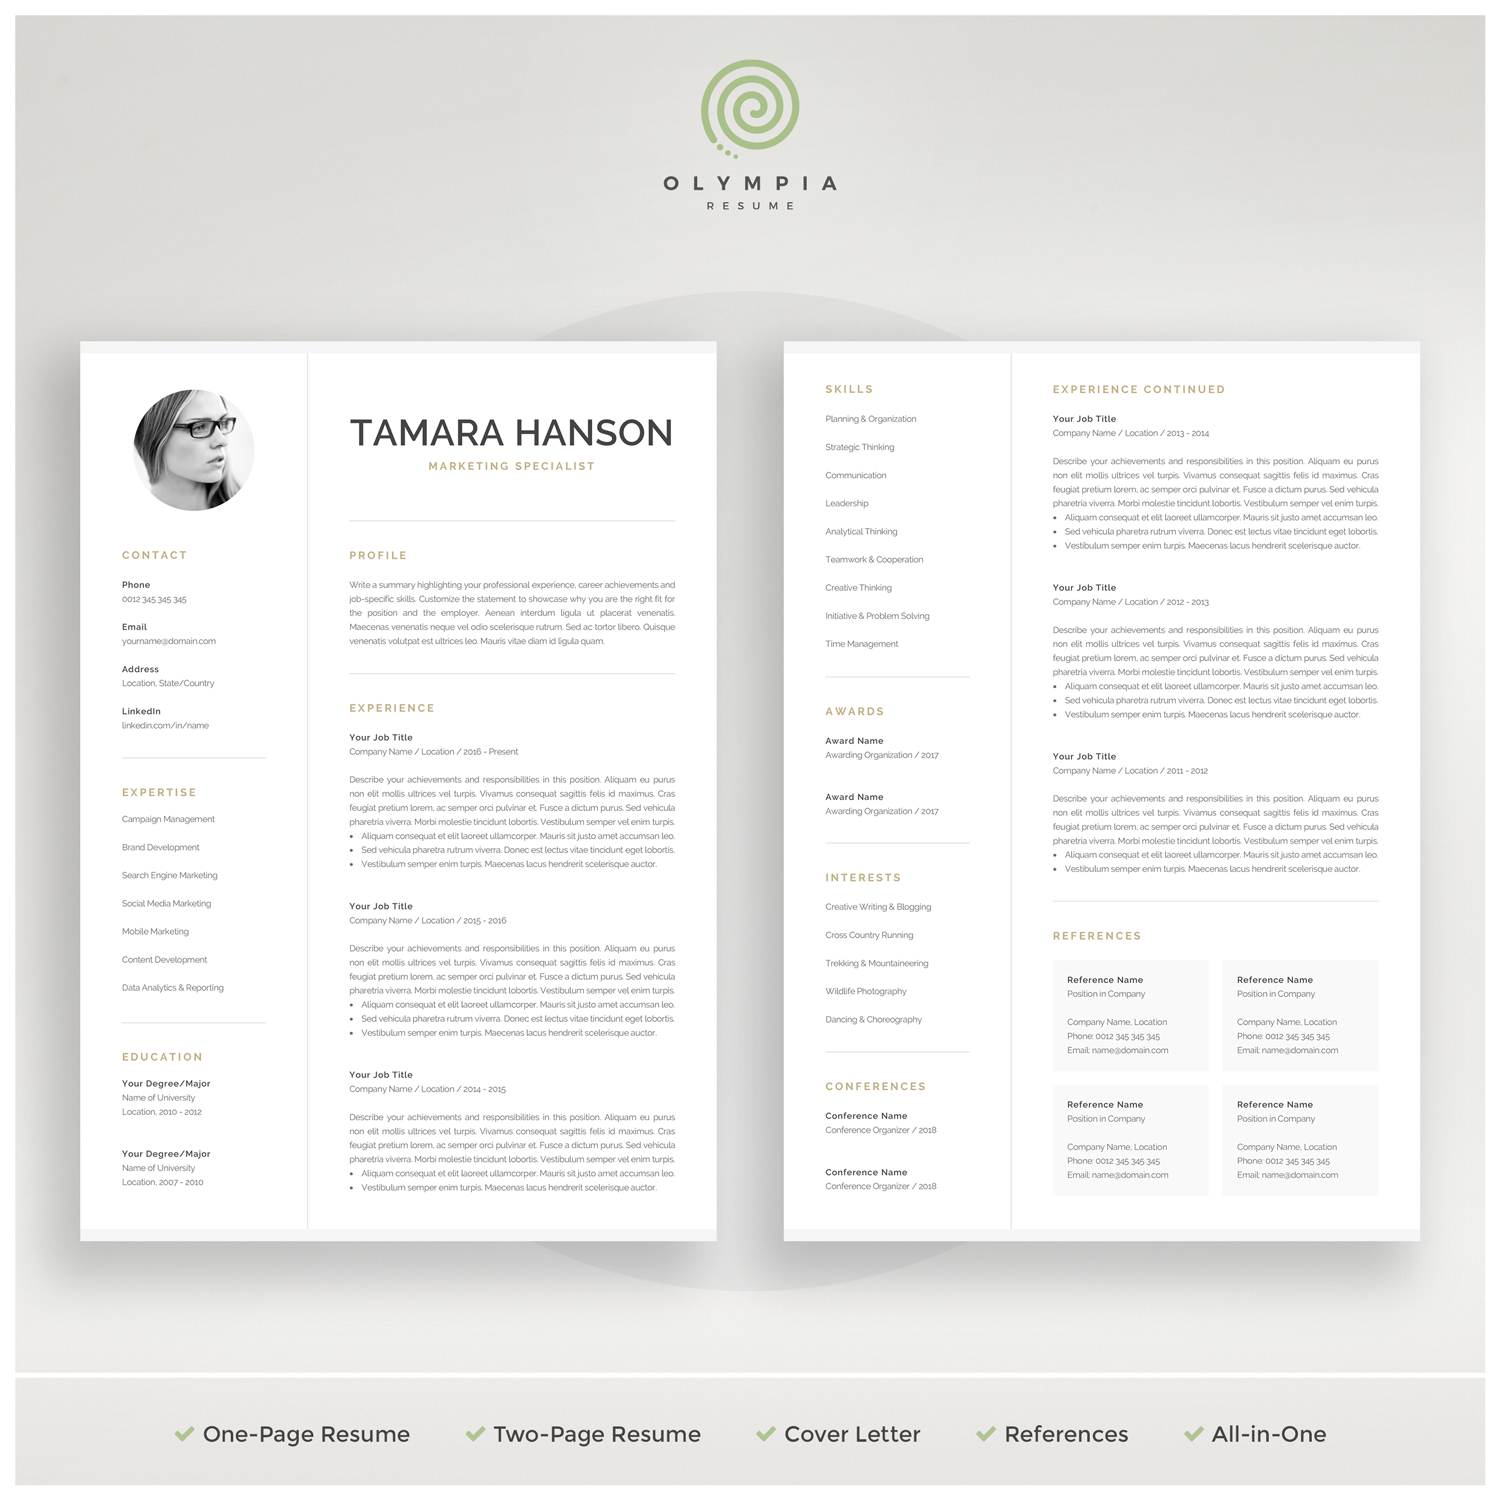 Modern Cv Template With Photo 1 2 Page Resume Professional Photo Resume For Word Mac Pages Marketing Cv Instant Download Tamara In 2020 Resume Template Professional Resume Templates Resume Template Word